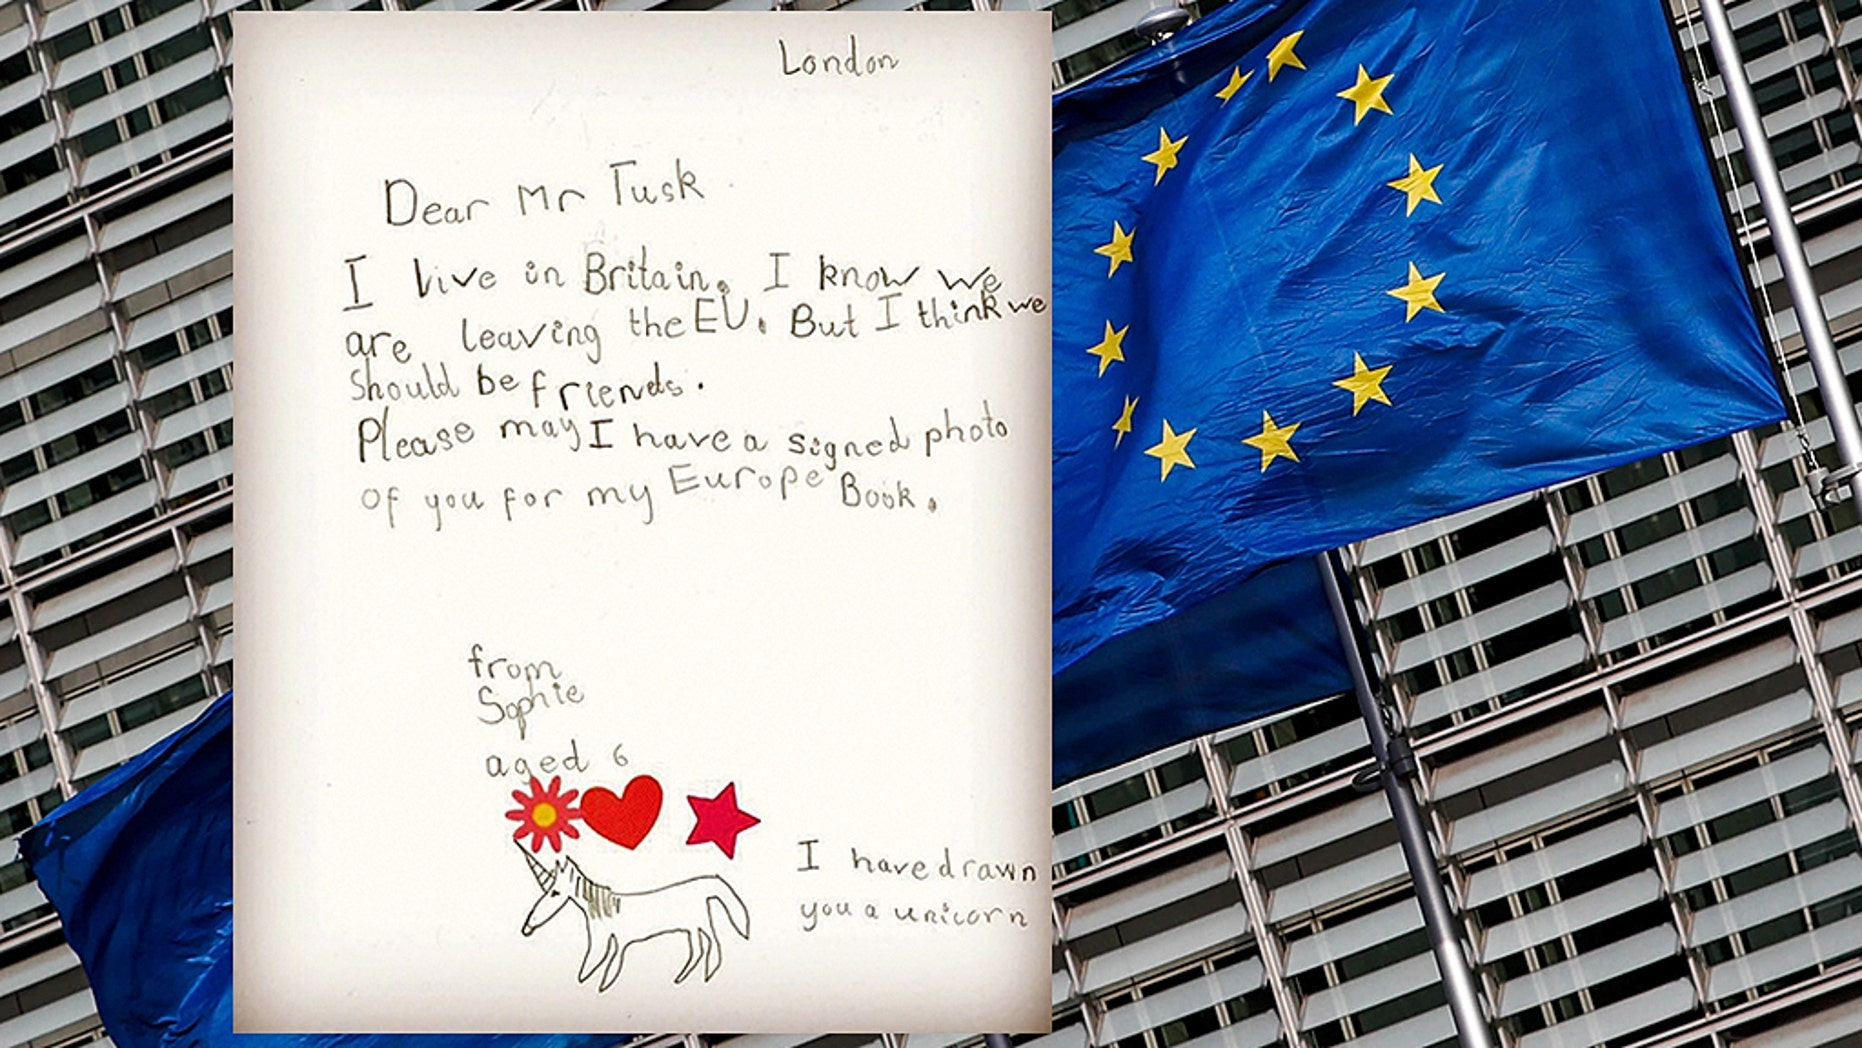 In the chaotic weeks approaching Britain's exit from the European Union, officials were touched by a letter from a six-year-old girl that apparently put things in perspective<br>